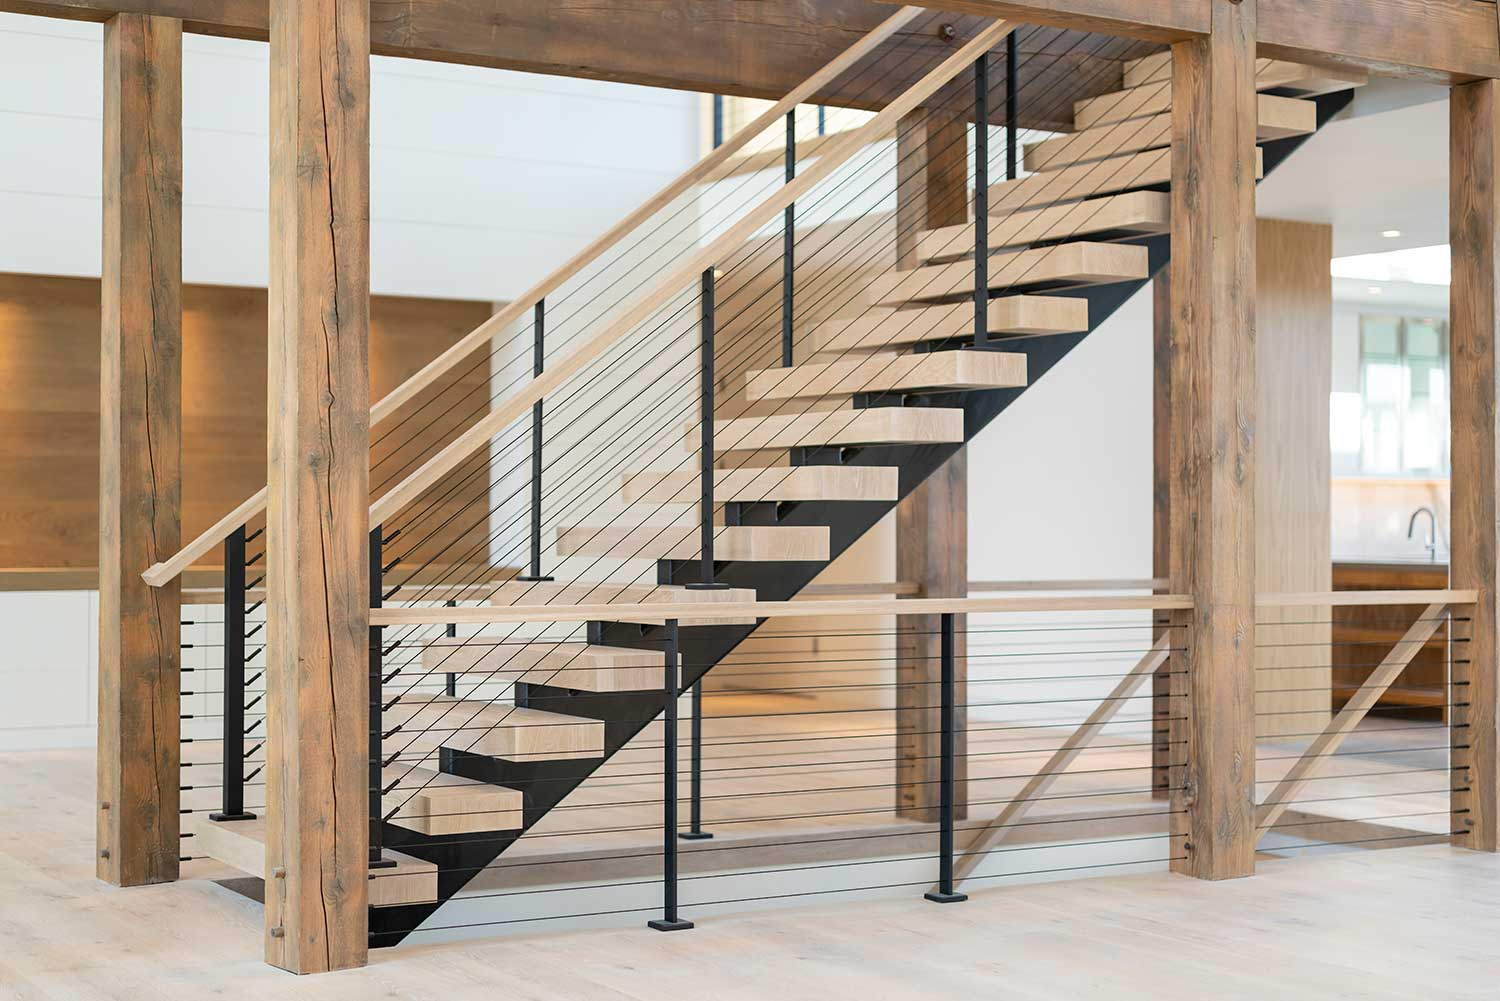 Rustic Timber Structure with Black cable railing system